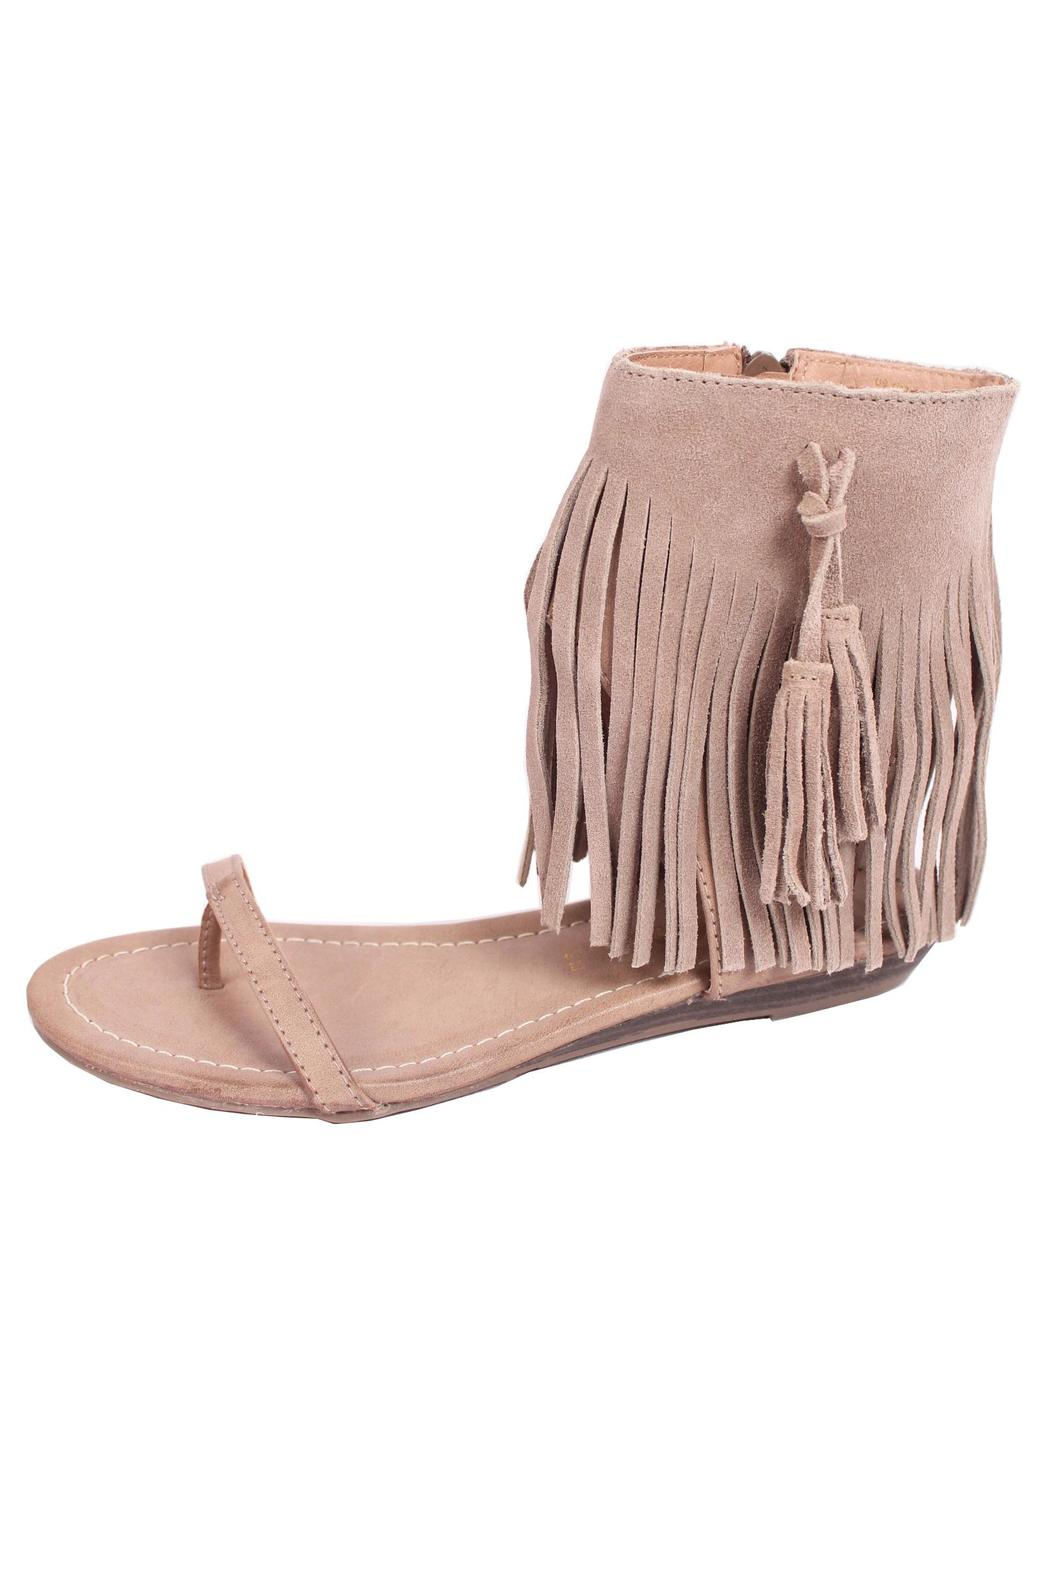 c6dc198f0b0327 Very Volatile Lex Fringe Sandal from Lake City by So-Lace — Shoptiques